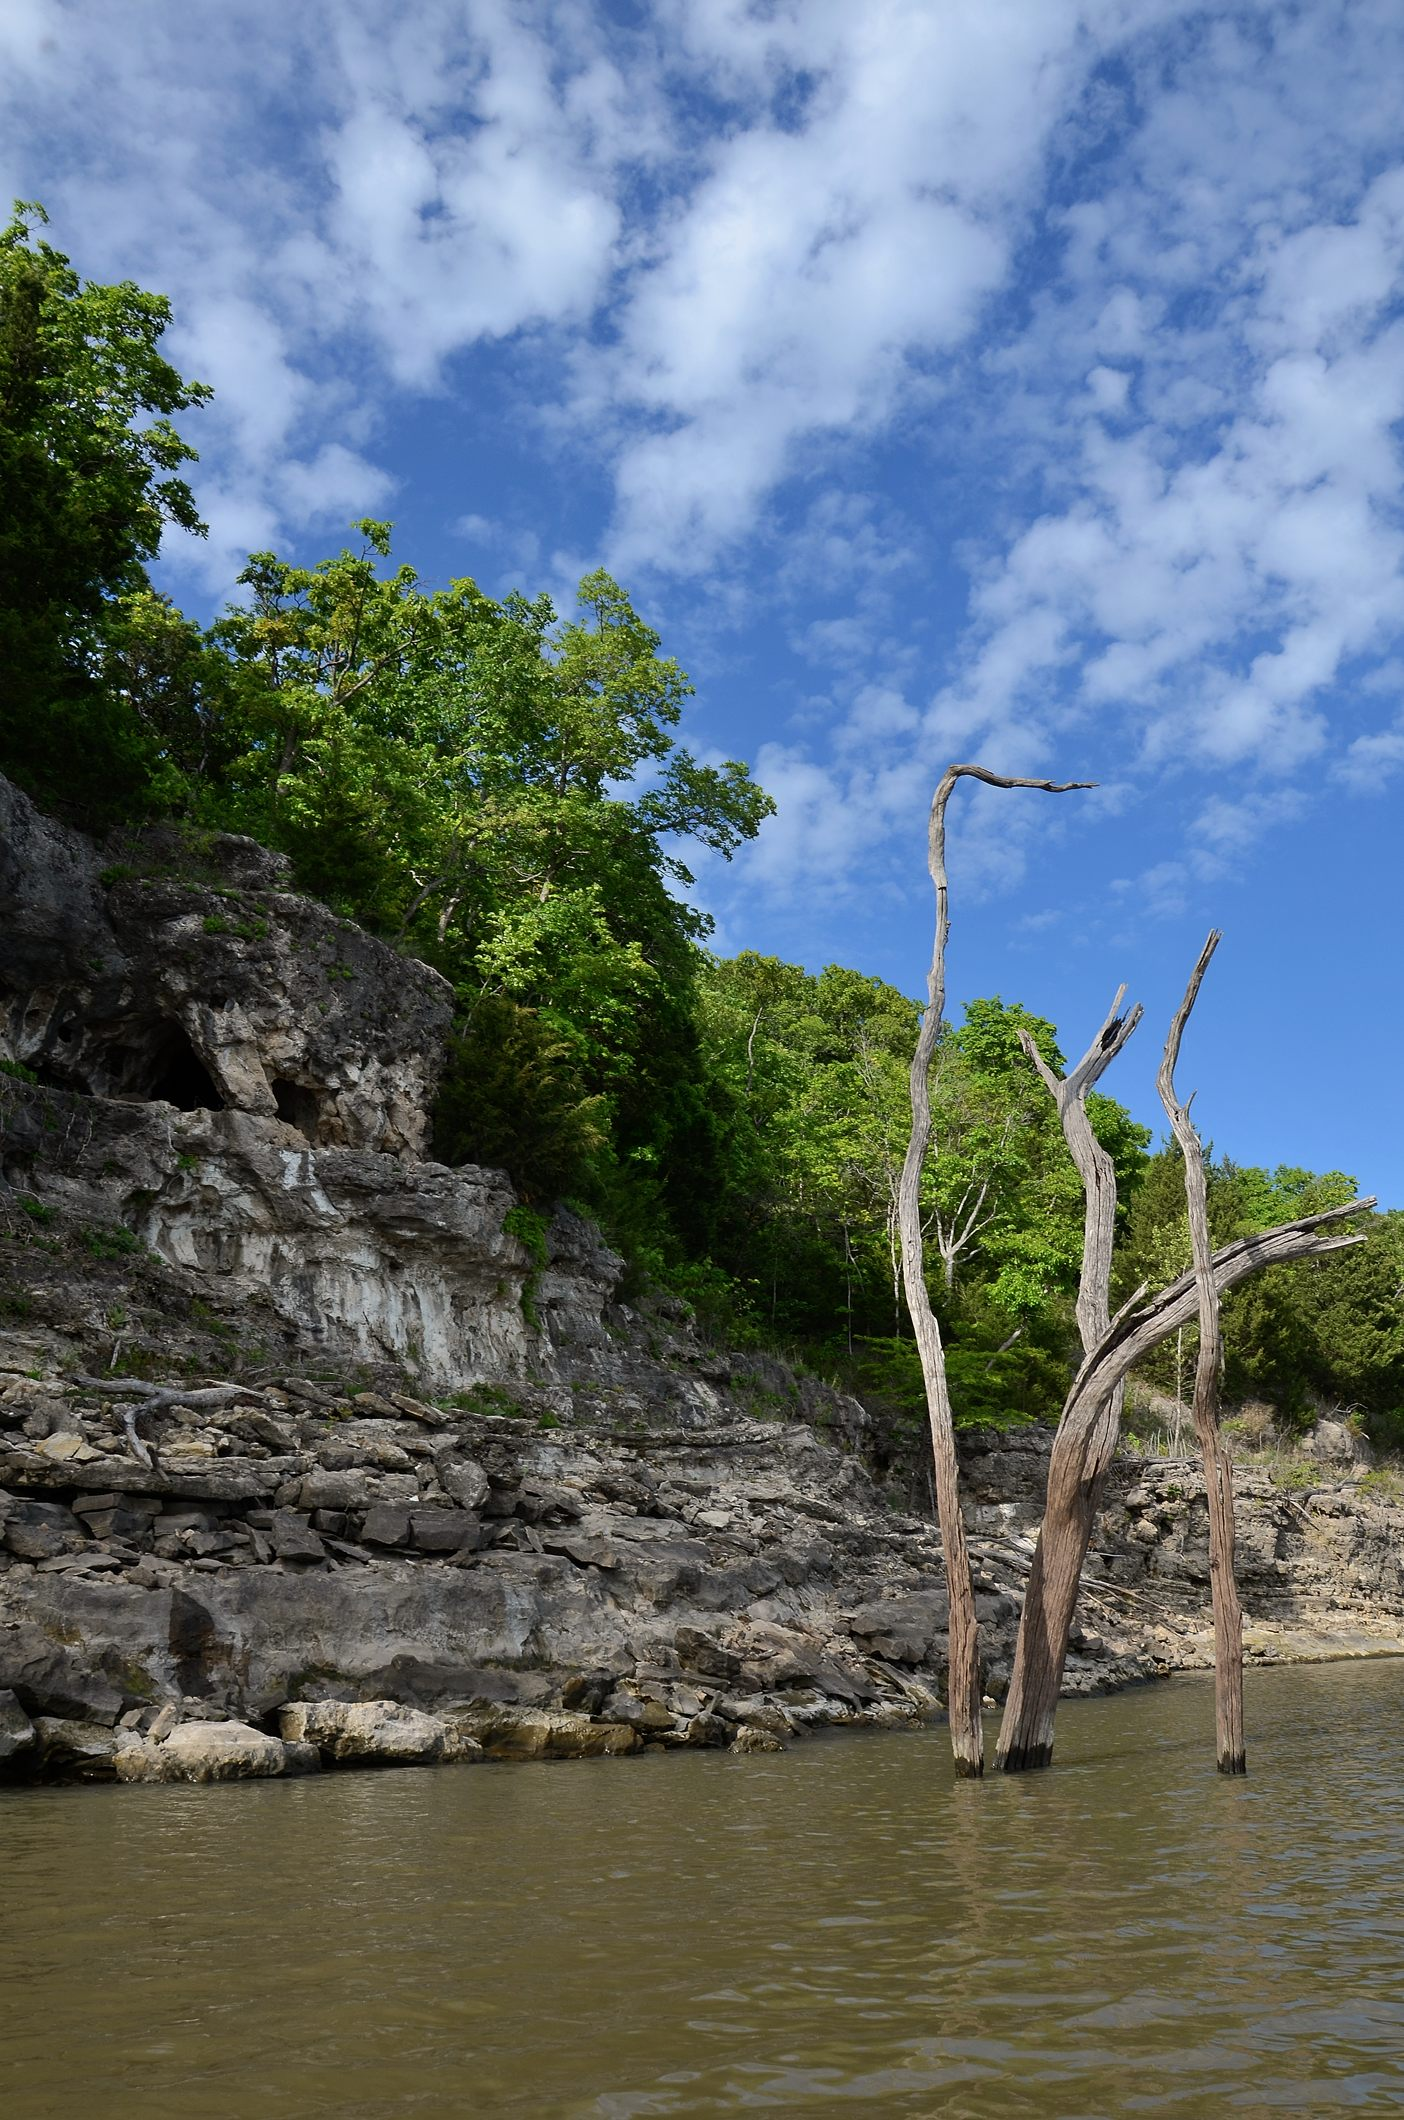 Blufff topped by trees, showing the rough texture, and a dead tree in the water at Lake Truman Missouri